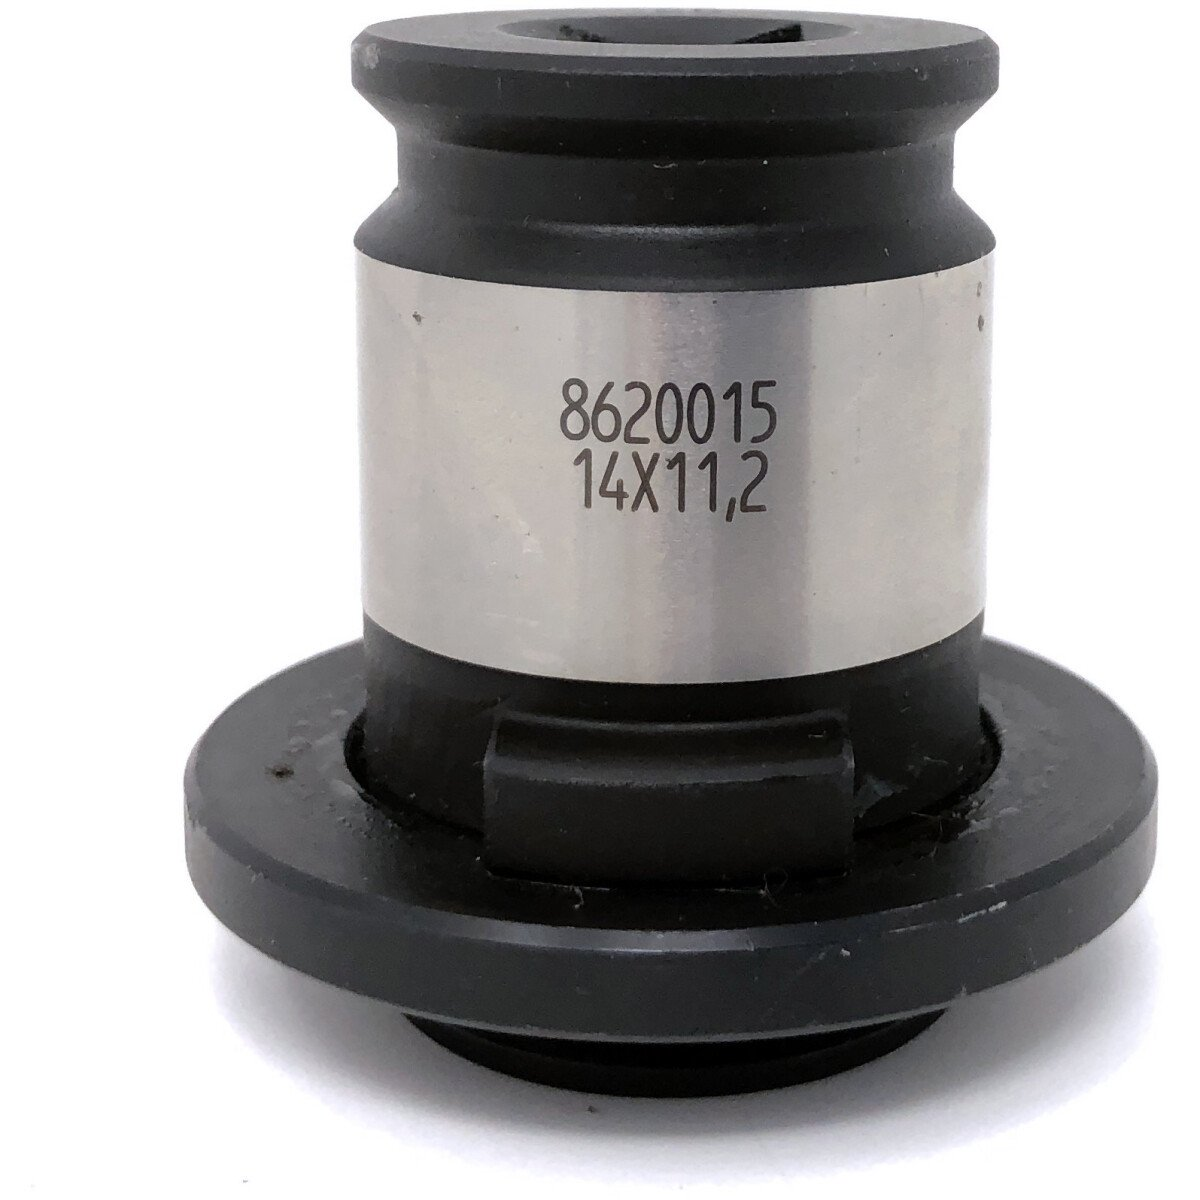 Unibor 8620015 M18-M20 Tapping Collet for No 2 Holder for Broaching Machine